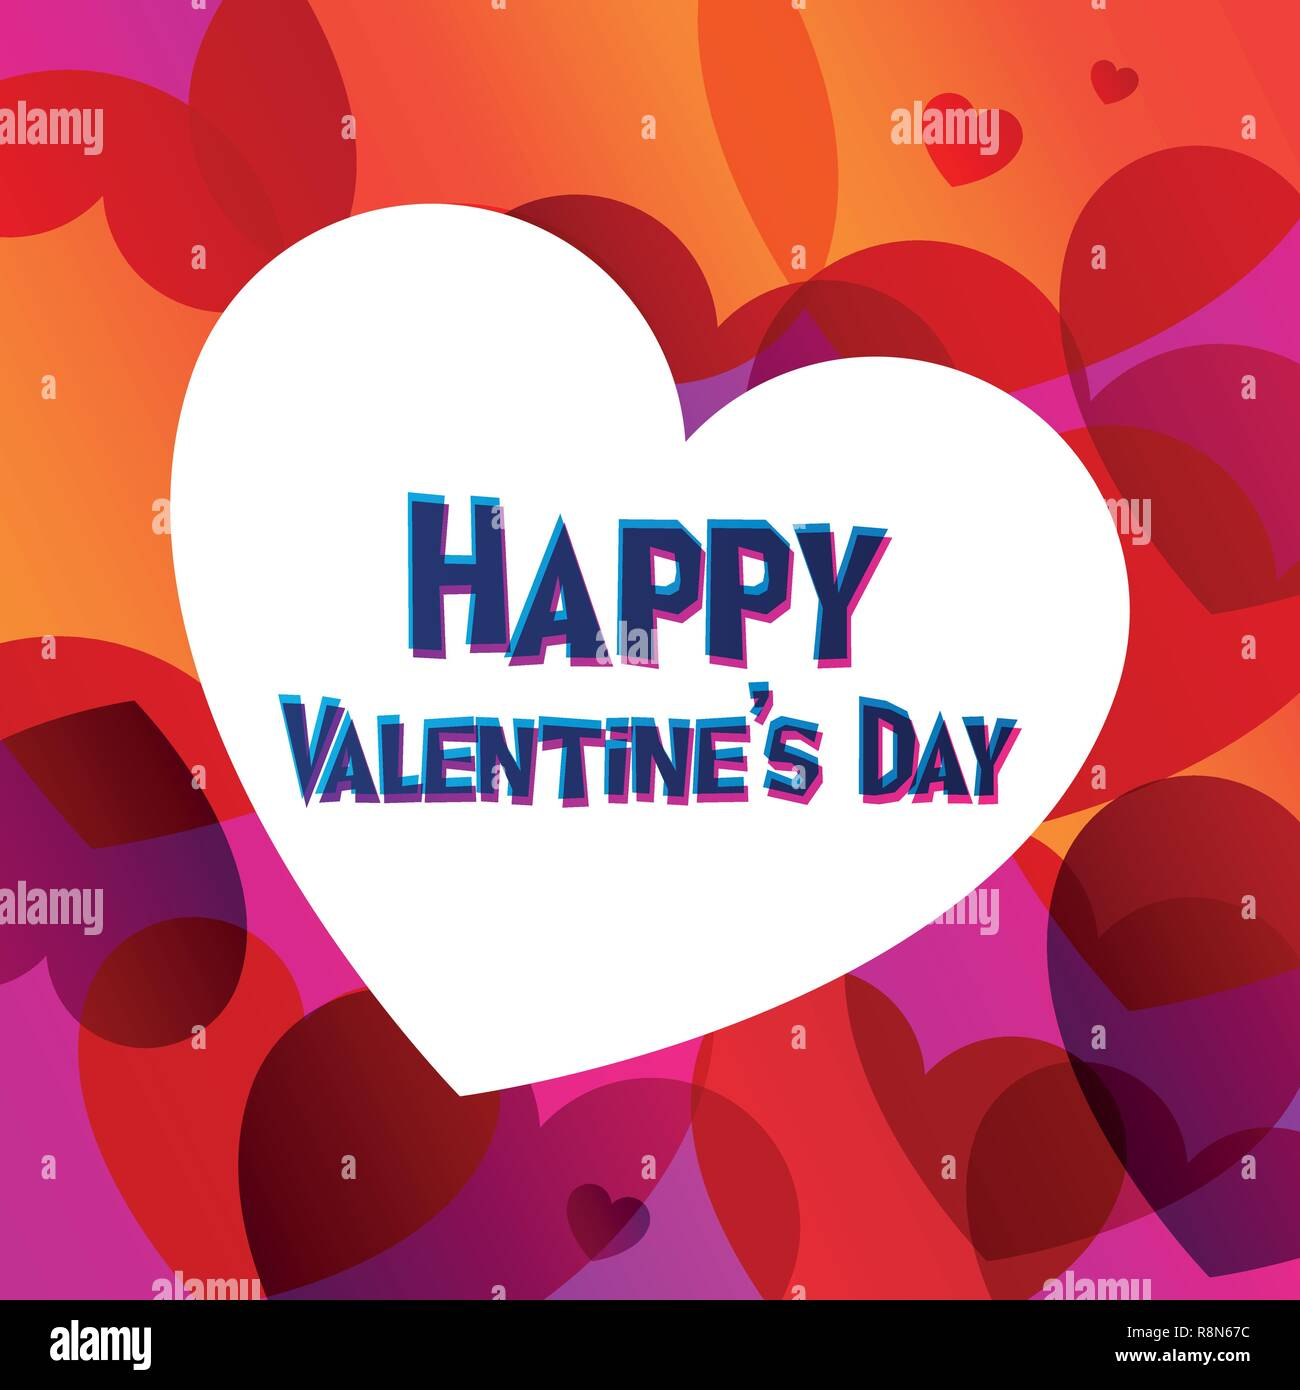 Happy Valentine Day Instagram Card In 2019 Graphic Trend Color